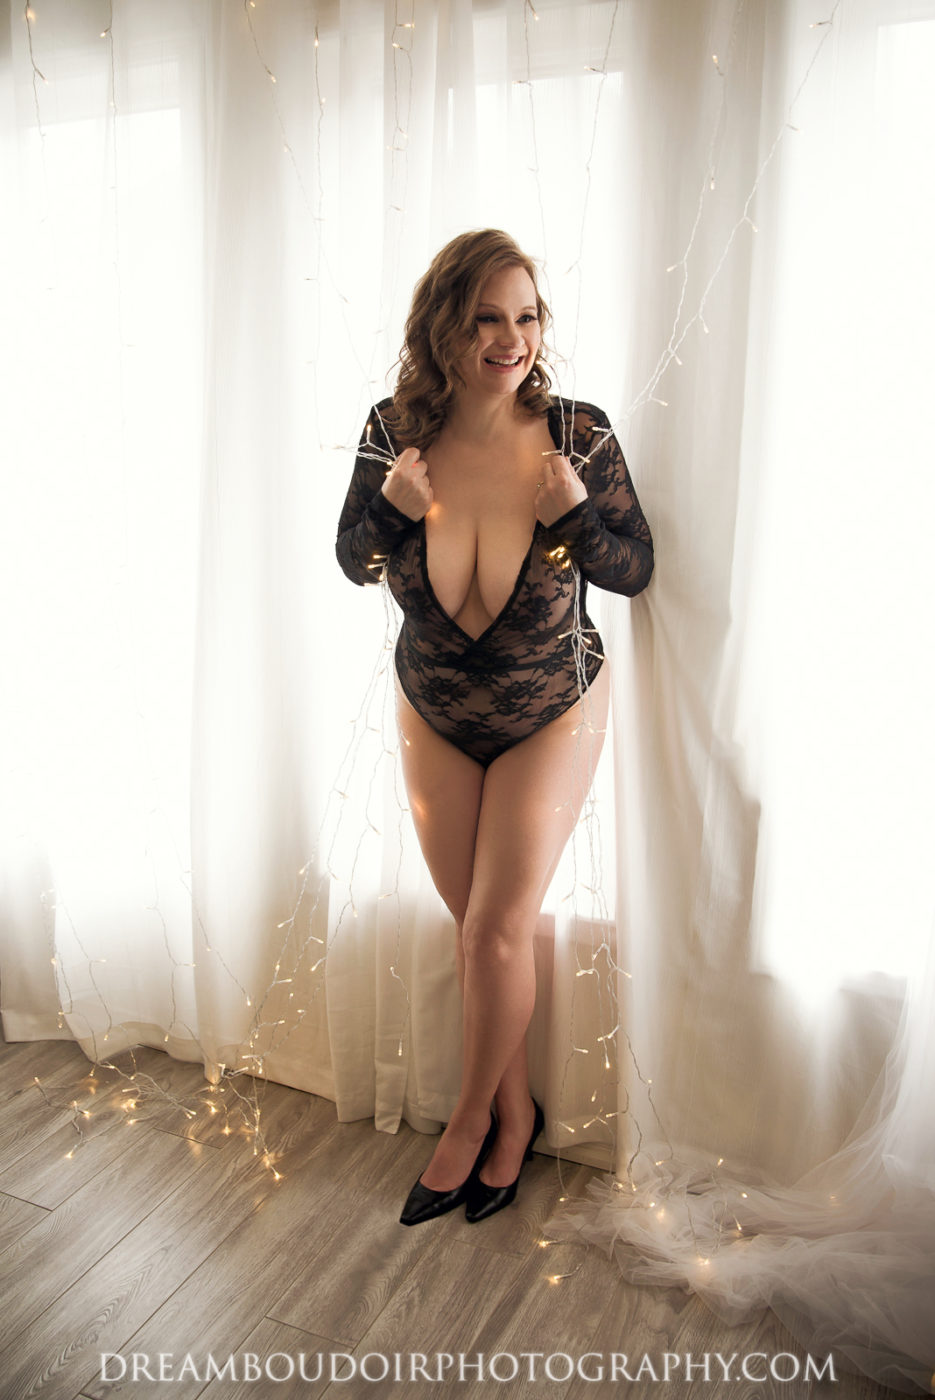 48b647133c7 toronto boudoir vancouver all female 40 years 50 anniversary bridal  confidence spa lingerie beautiful women photography